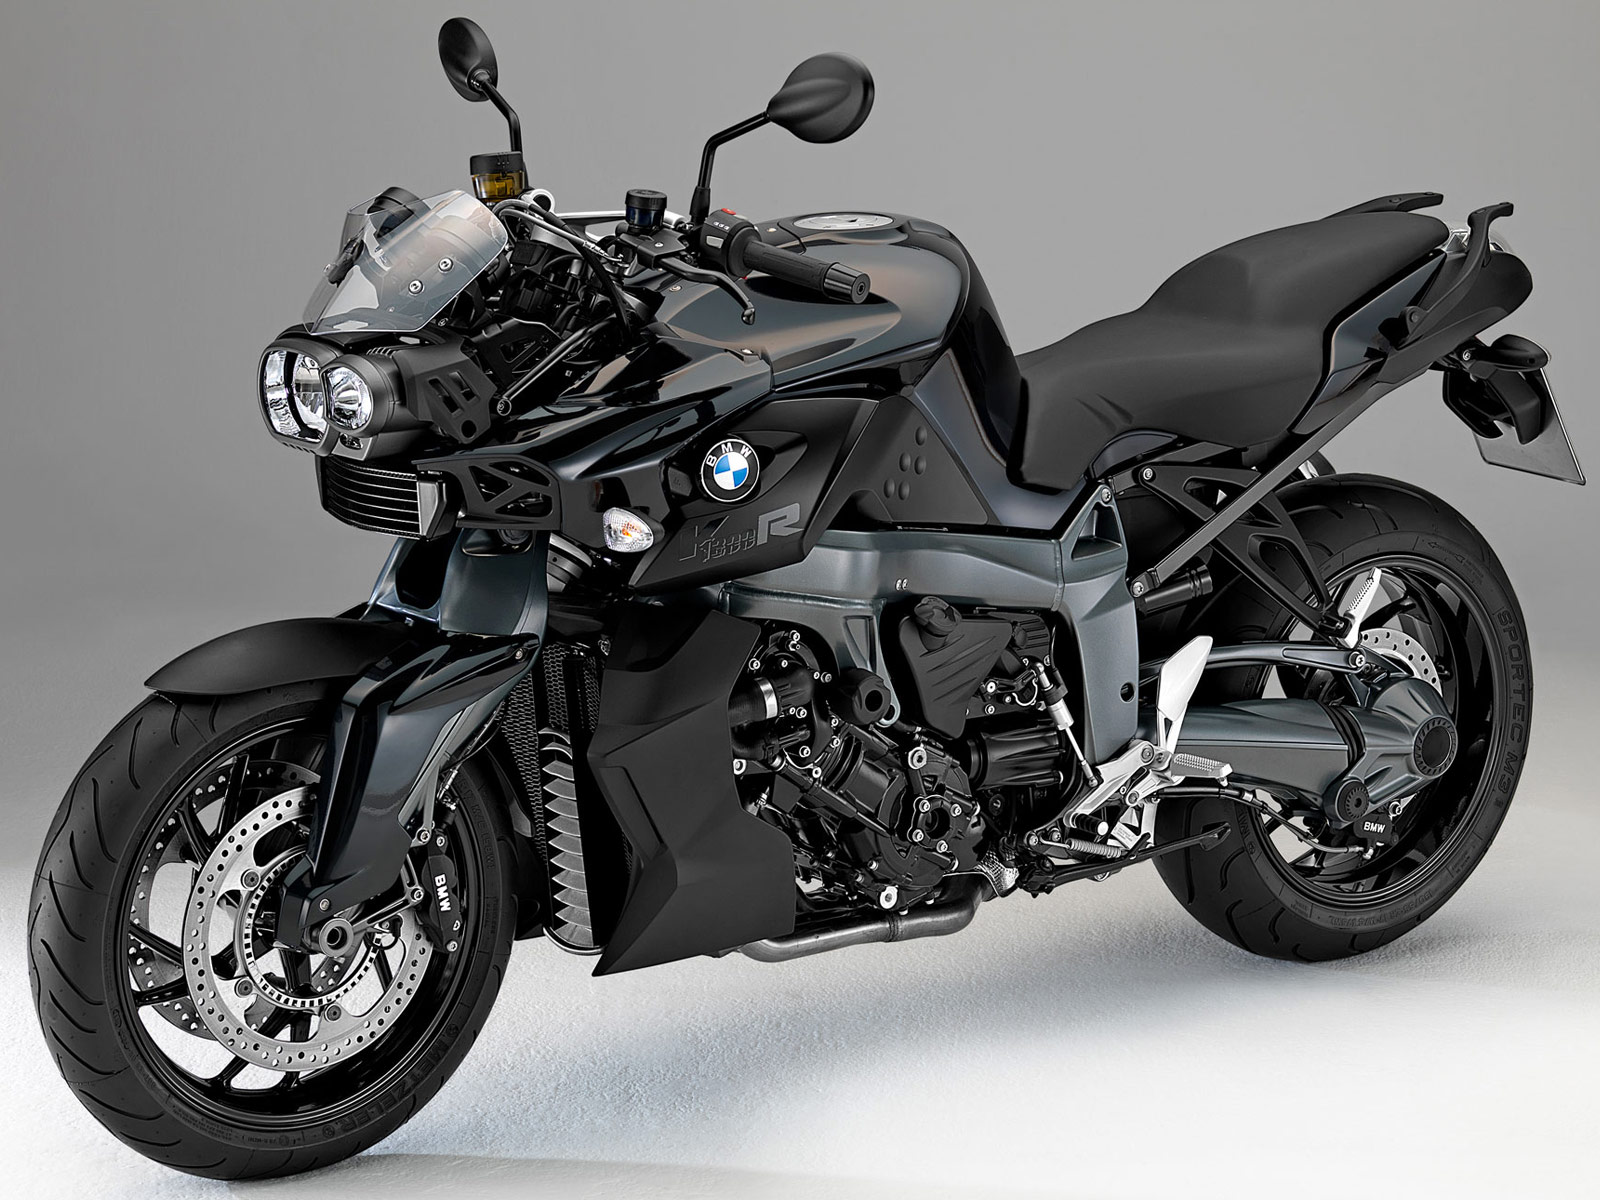 2013 bmw k1300r pictures bmw automotive. Black Bedroom Furniture Sets. Home Design Ideas